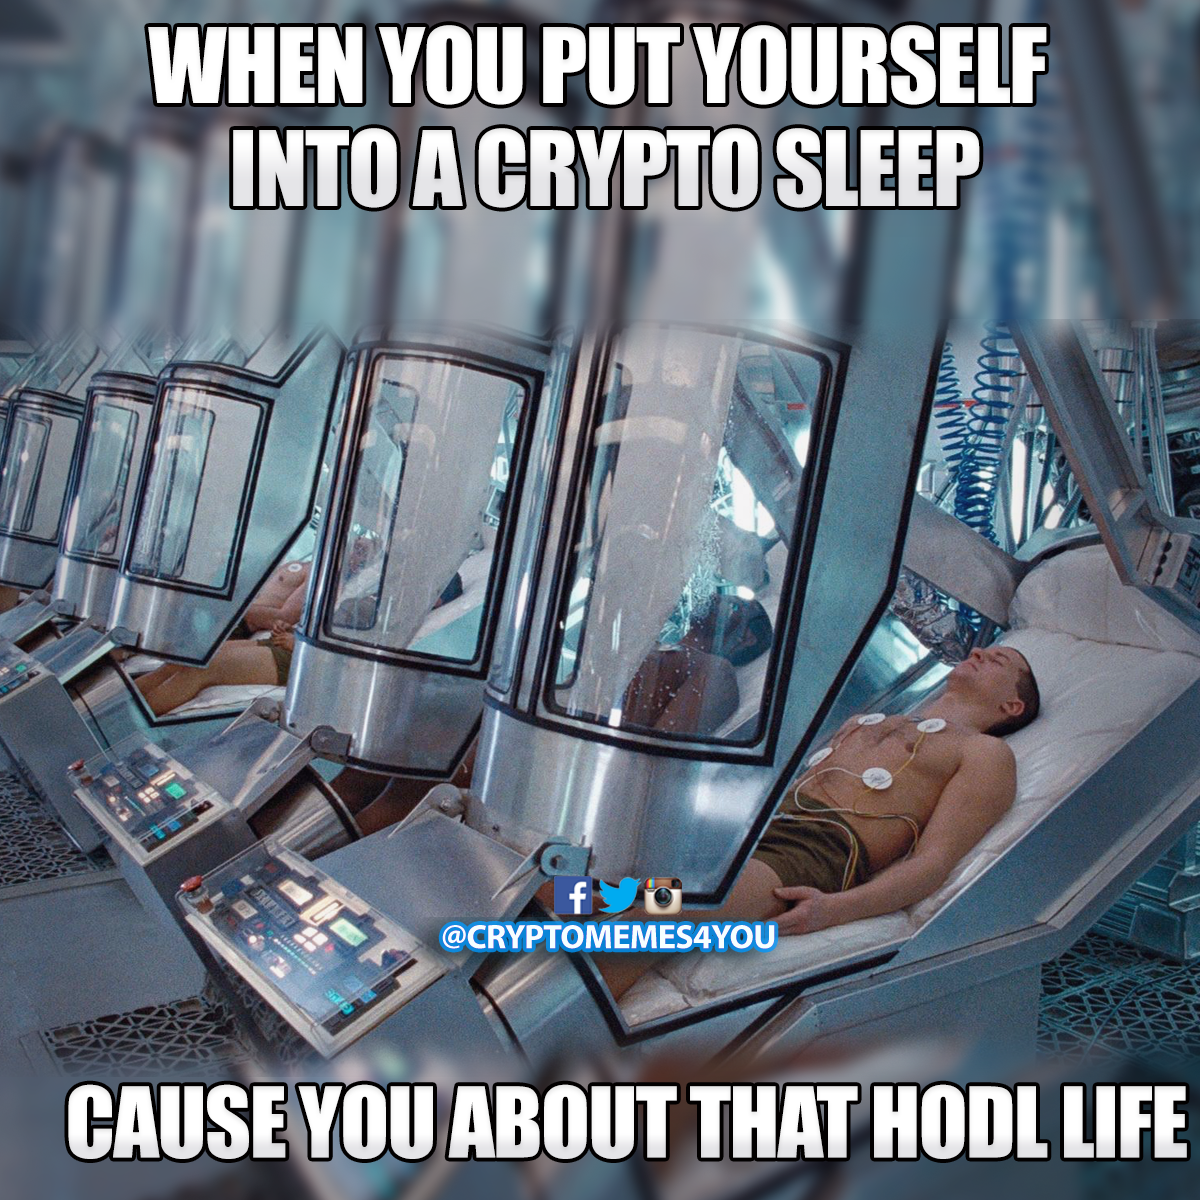 Go To Sleep Wake Up And Be Rich Crypto Overnightrich Cryptomemes Bitcoin Blochain Best Crypto Money Strategy Life